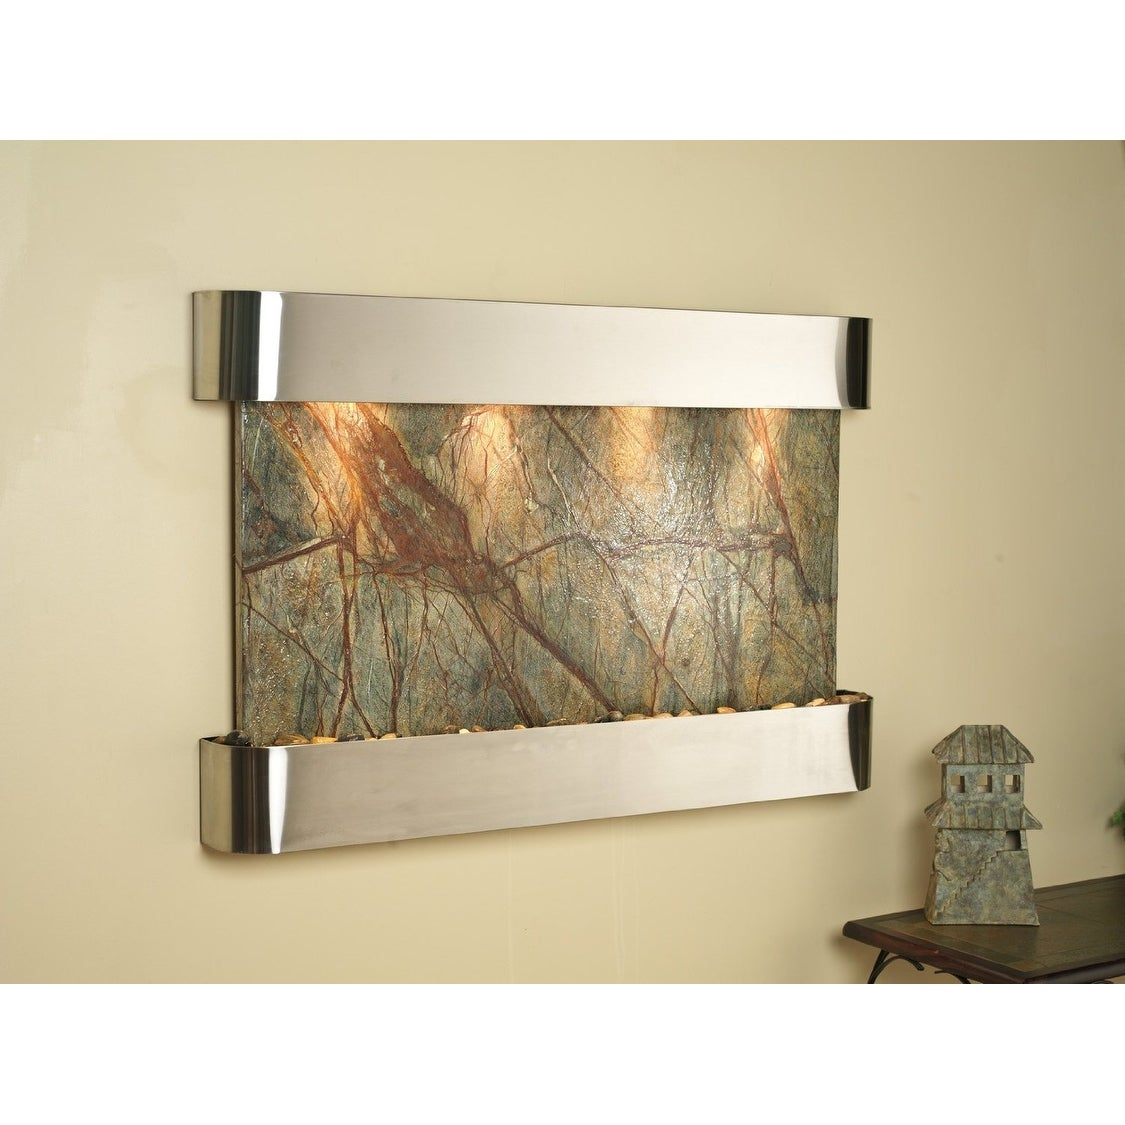 Adagio Sunrise Springs With Green Rainforest Marble in Stainless Steel Finish an - Thumbnail 0